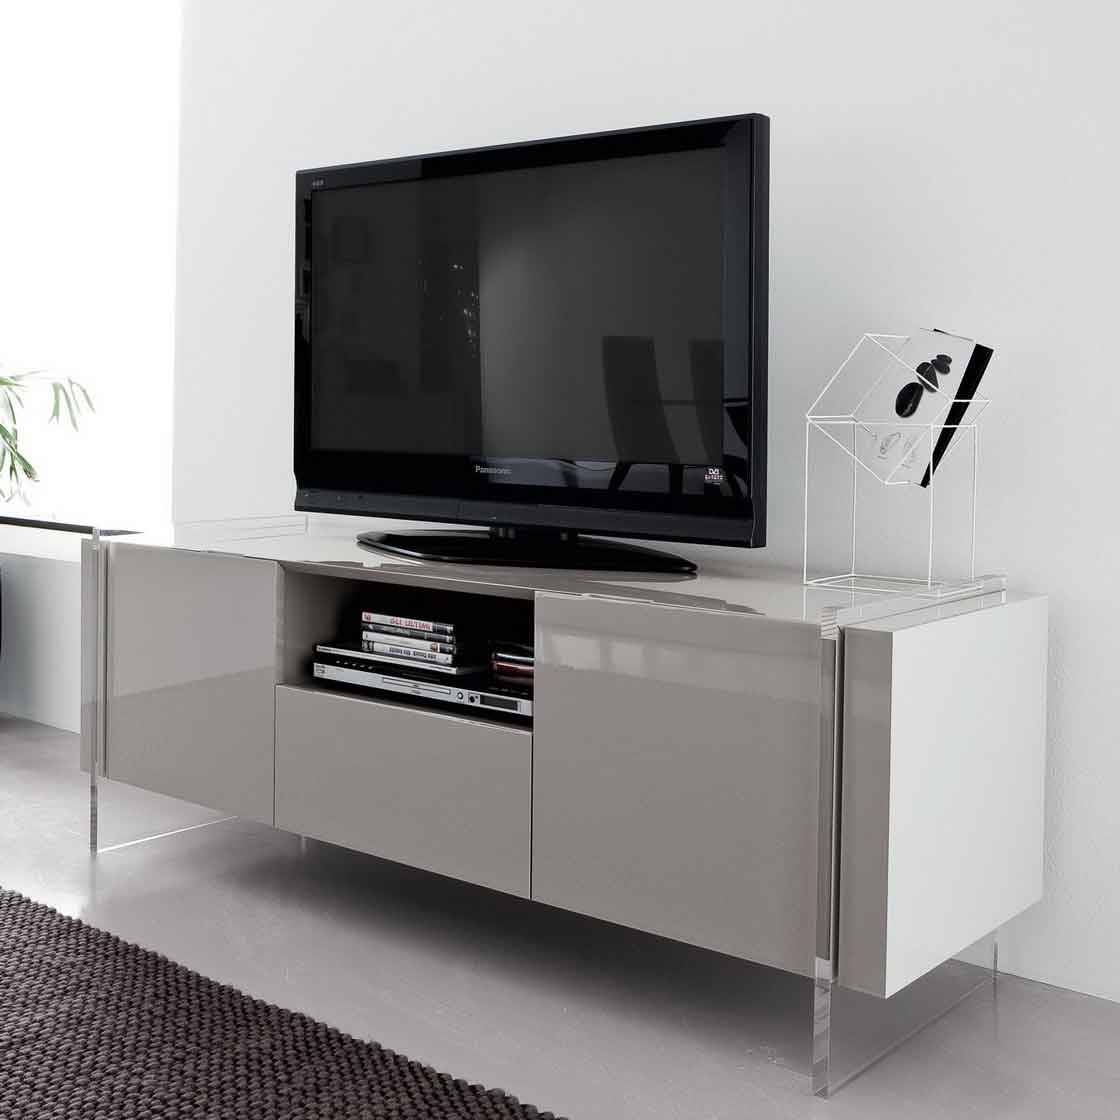 Innovative-Tv-Stand-For-Home-Entertainment-Room-With-Three with regard to Acrylic Tv Stands (Image 7 of 15)